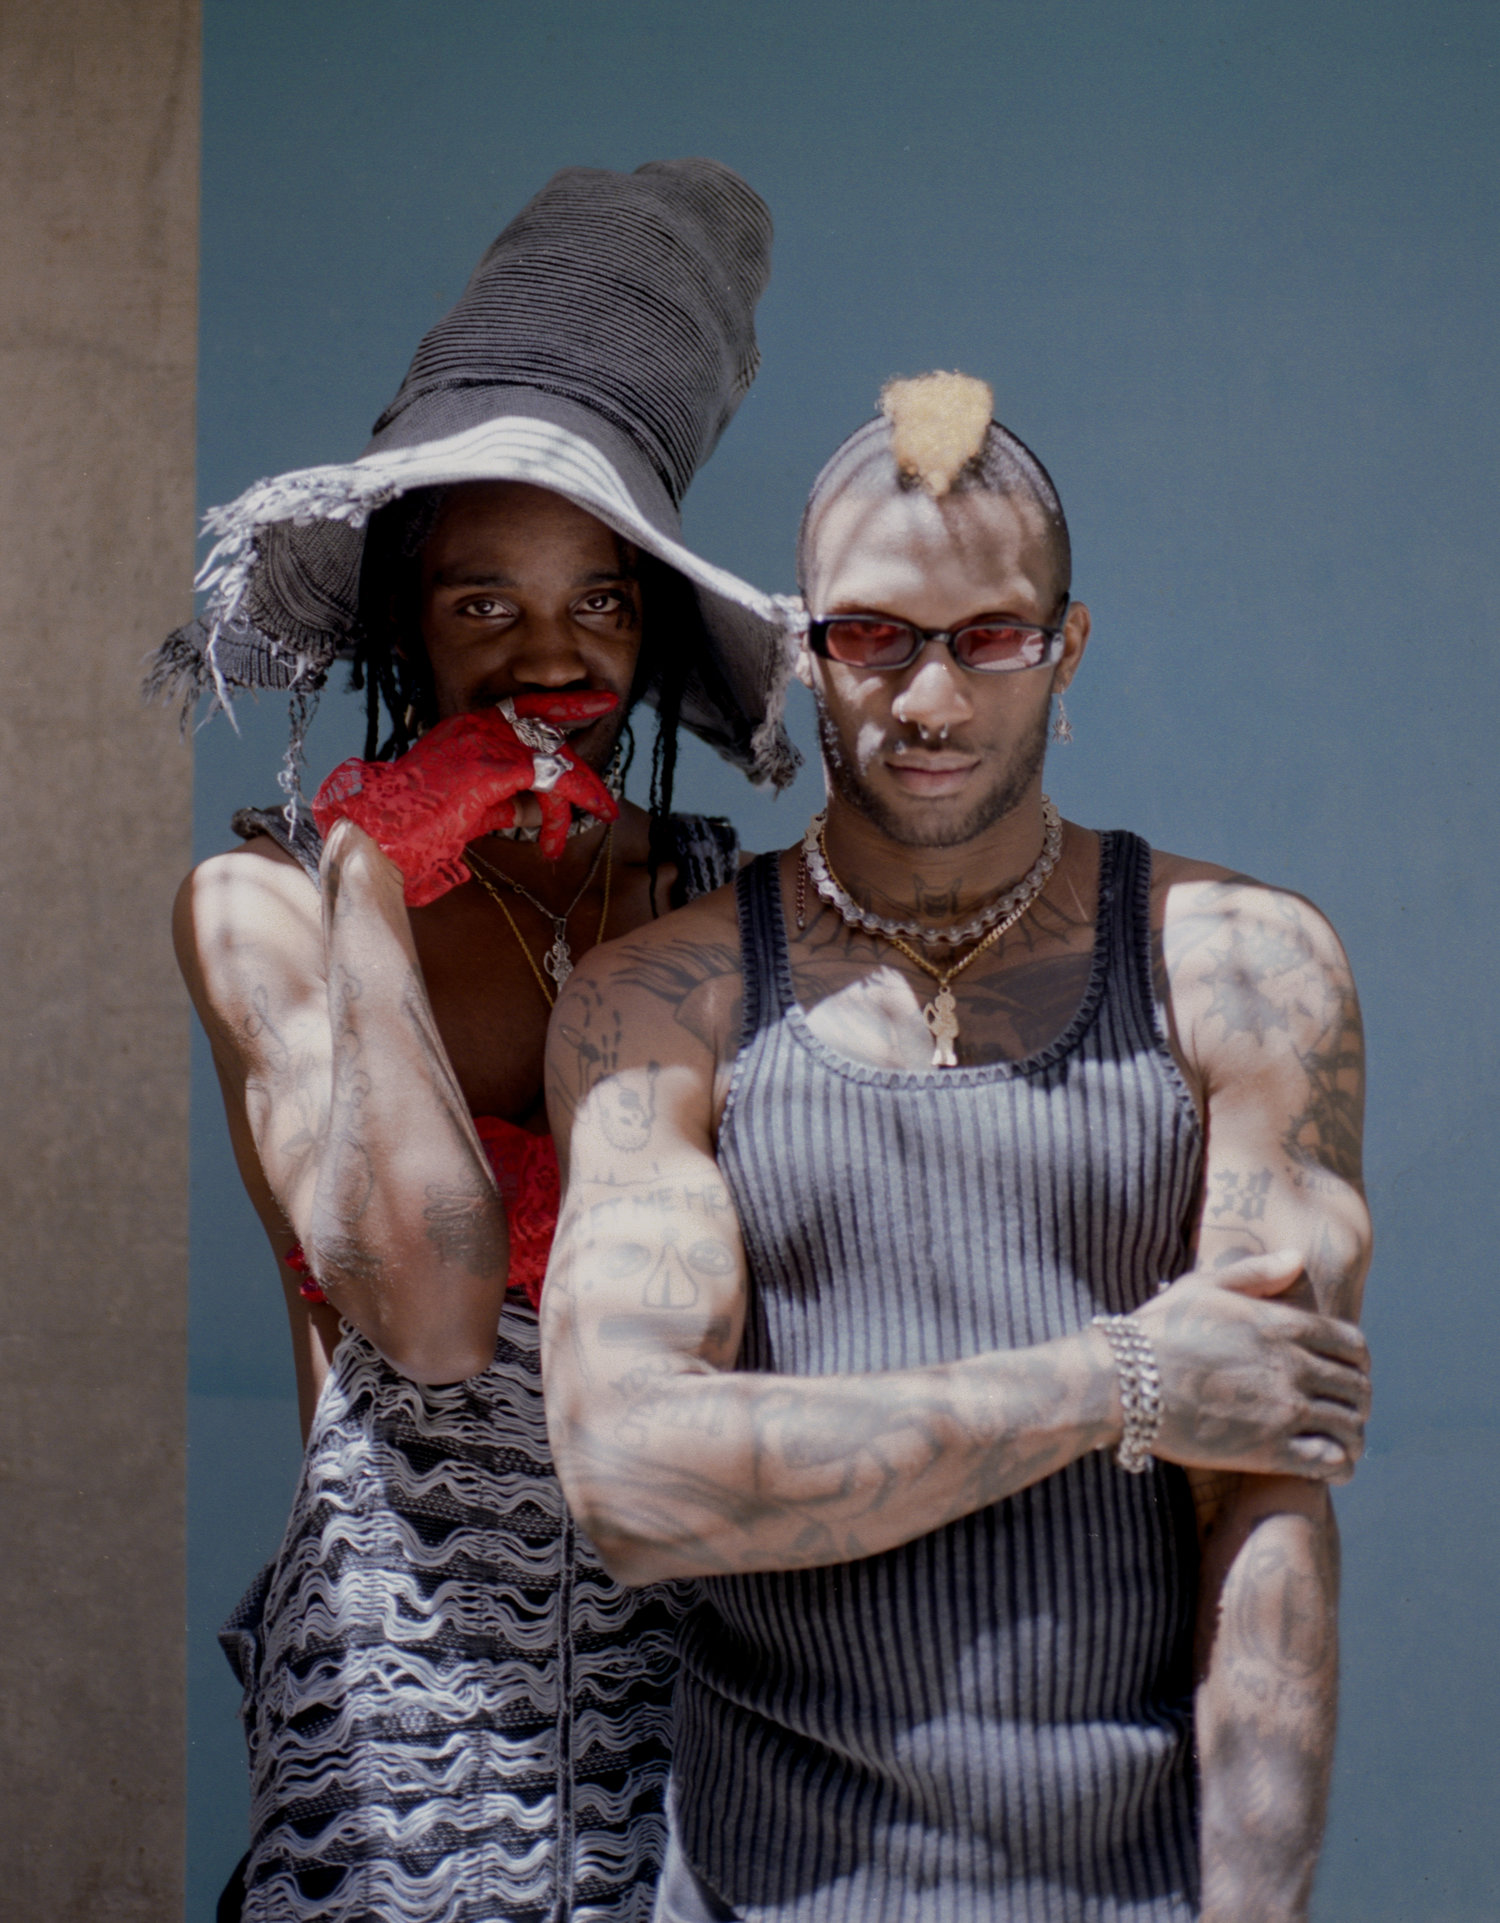 Ho99o9 photographed by Tonje Thilesen